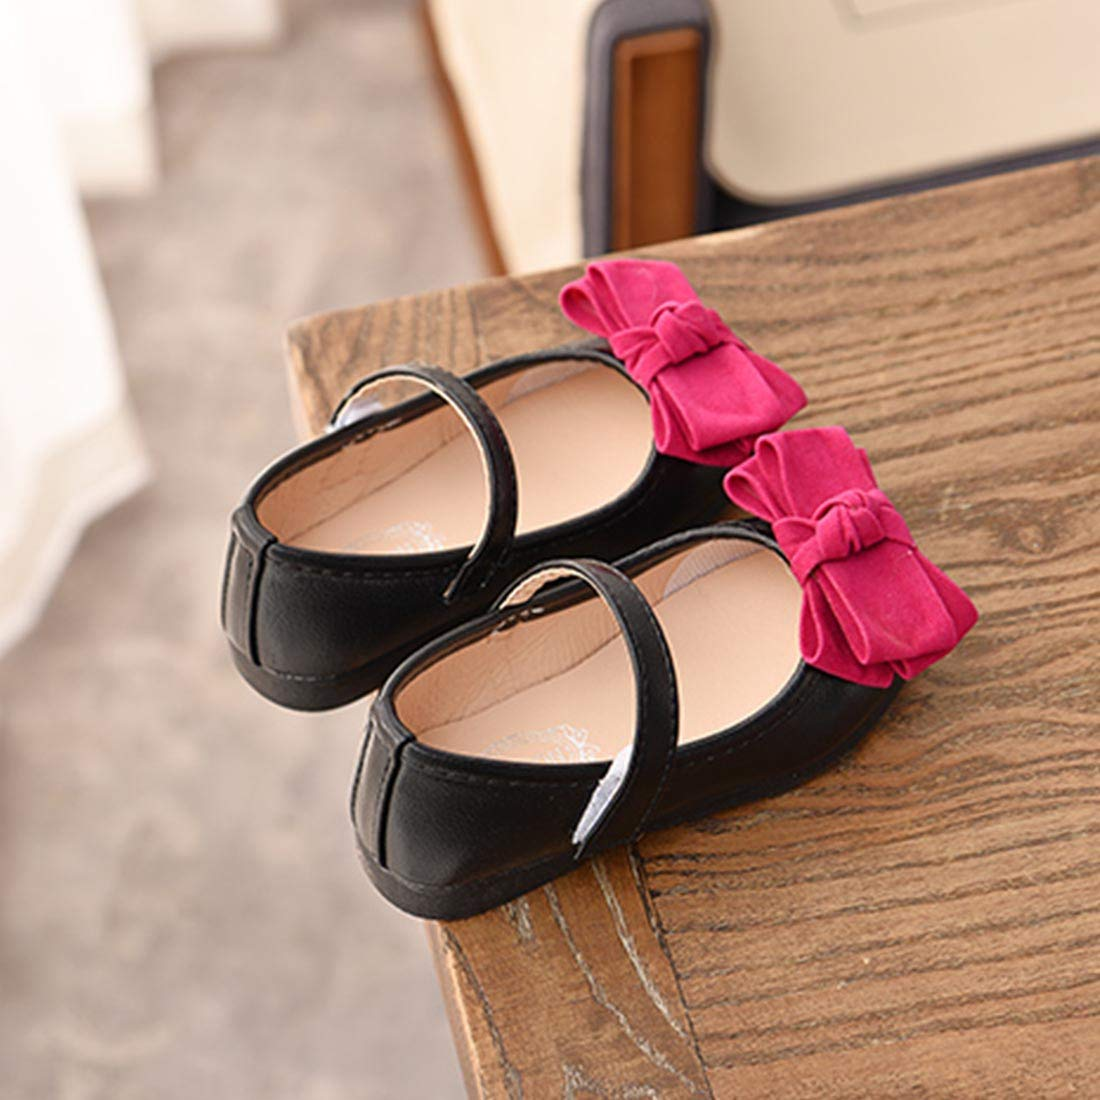 JTENGYAO Girls Ballet Bows Flat Shoes Flat Wedding Party Mary Janes Pink Shoes